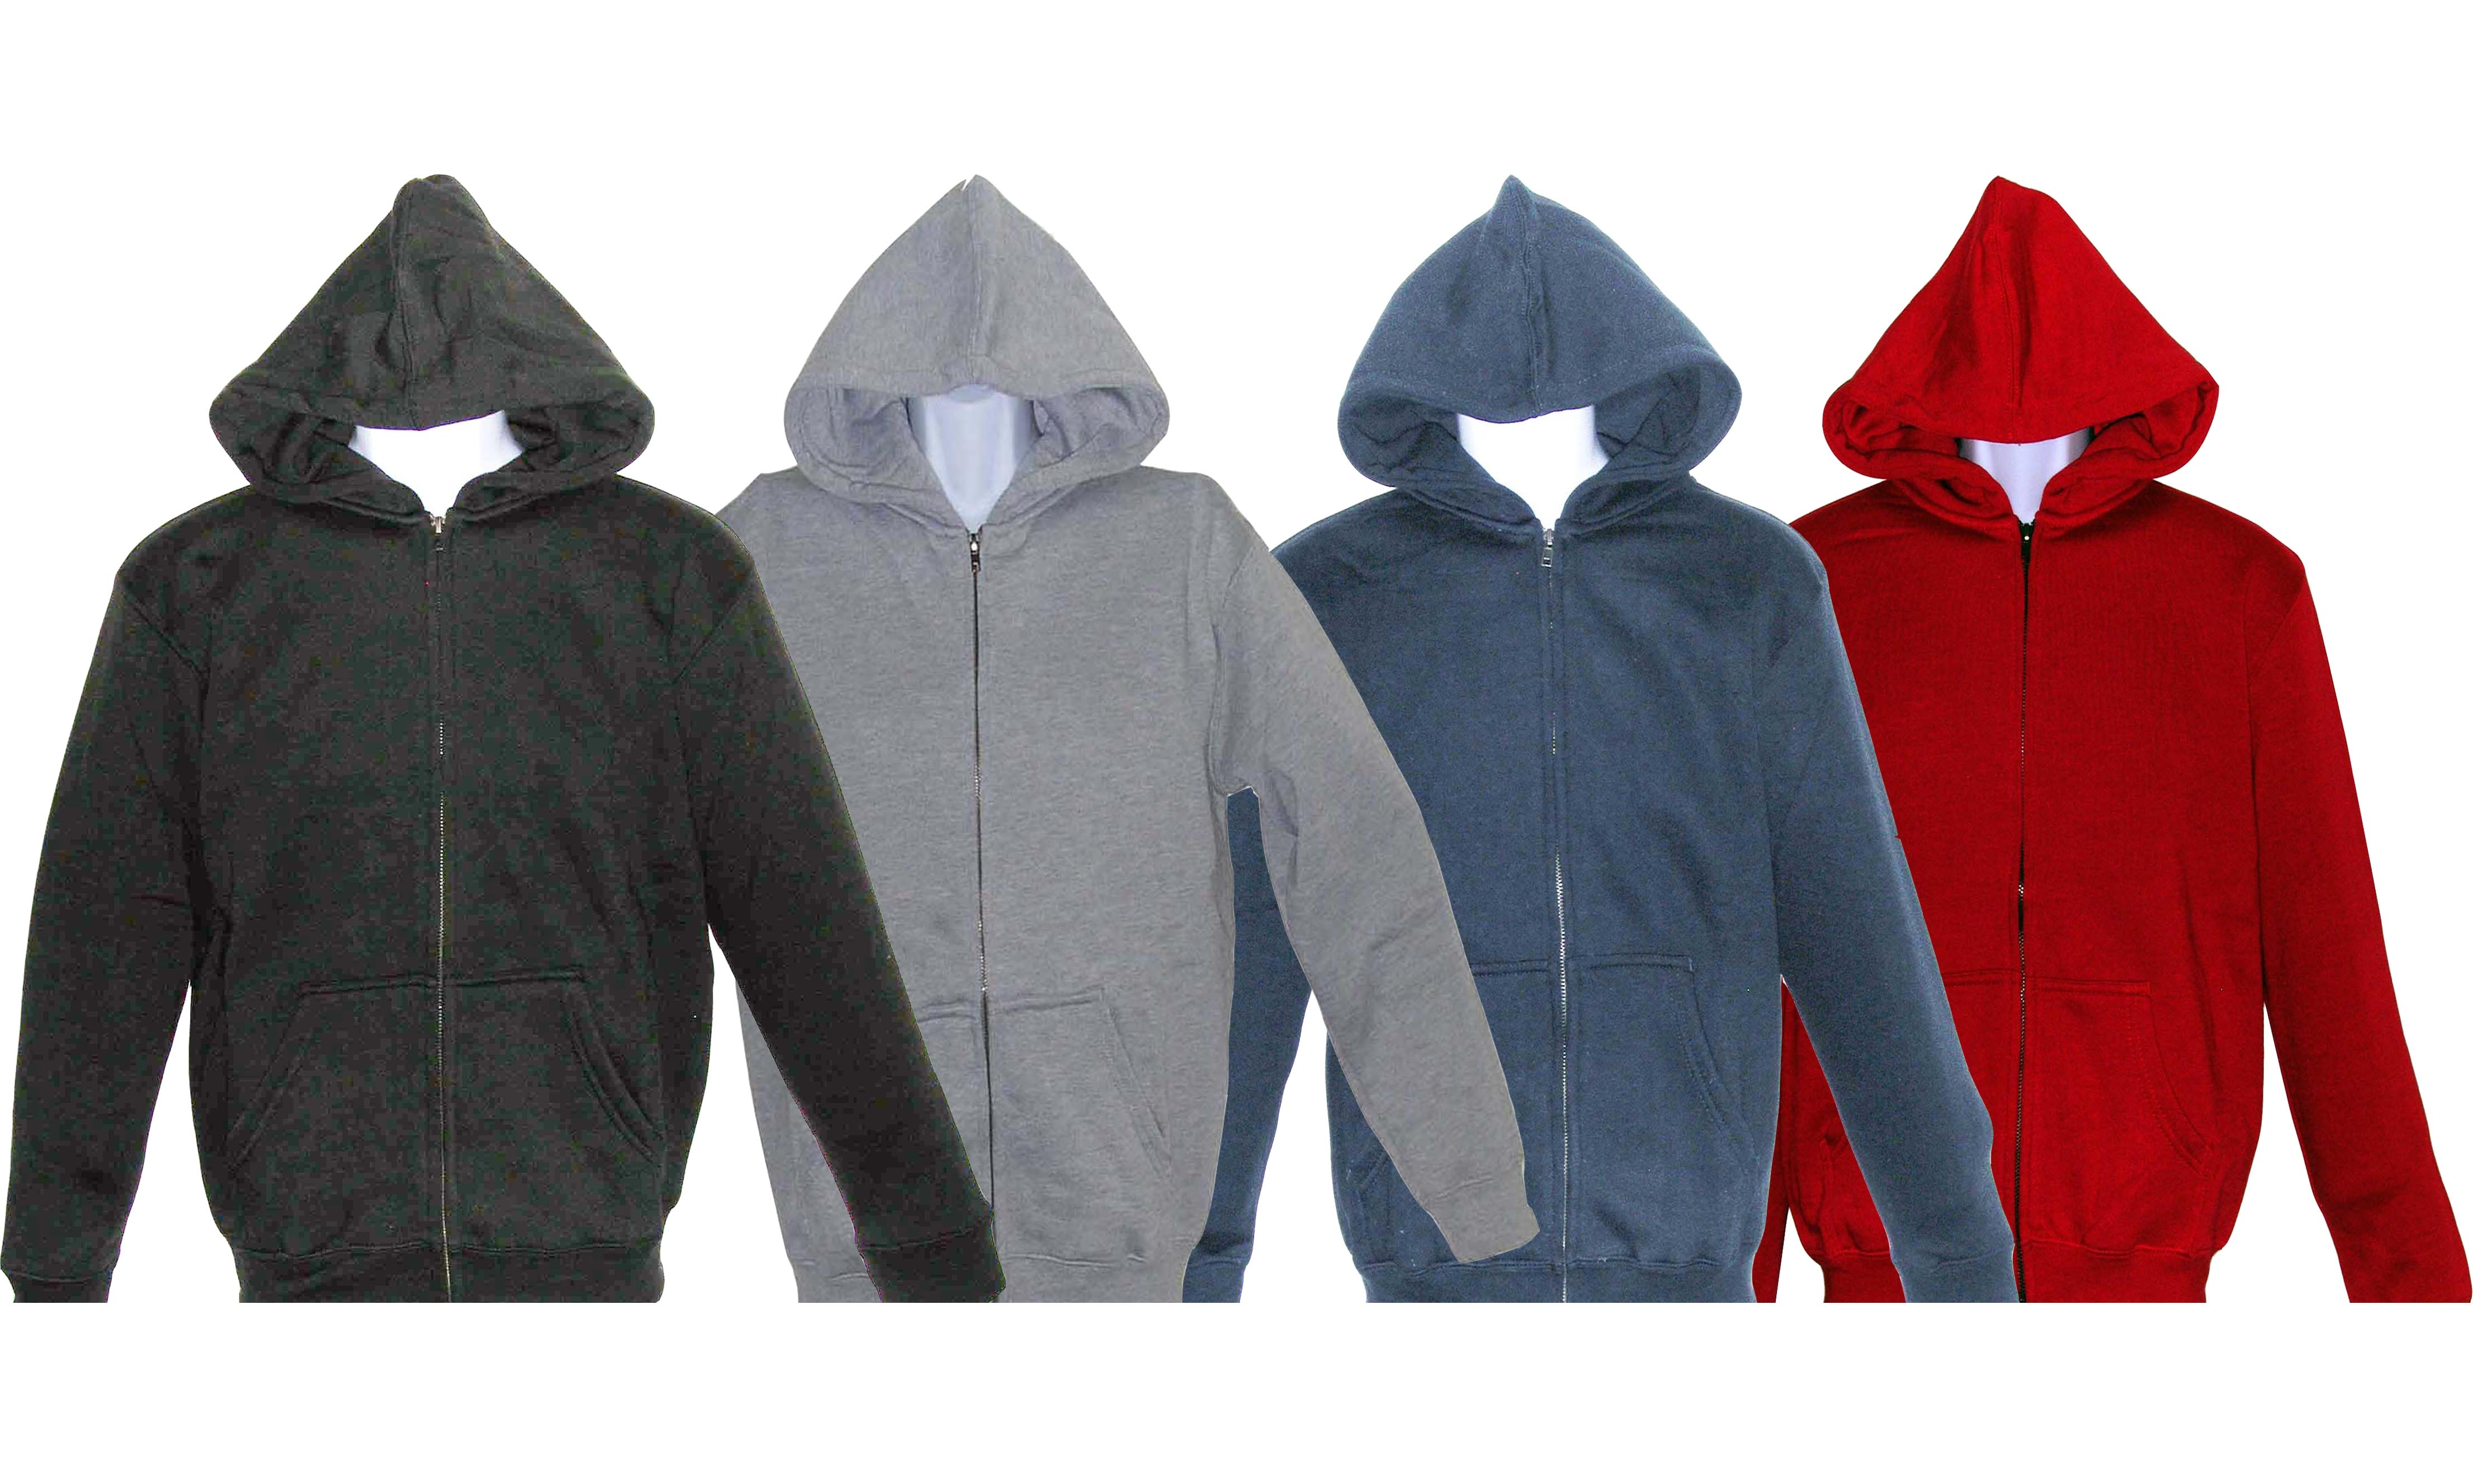 ADULT FULL ZIPPER HOODED FLEECE SWEATSHIRT JACKET - Specien.com